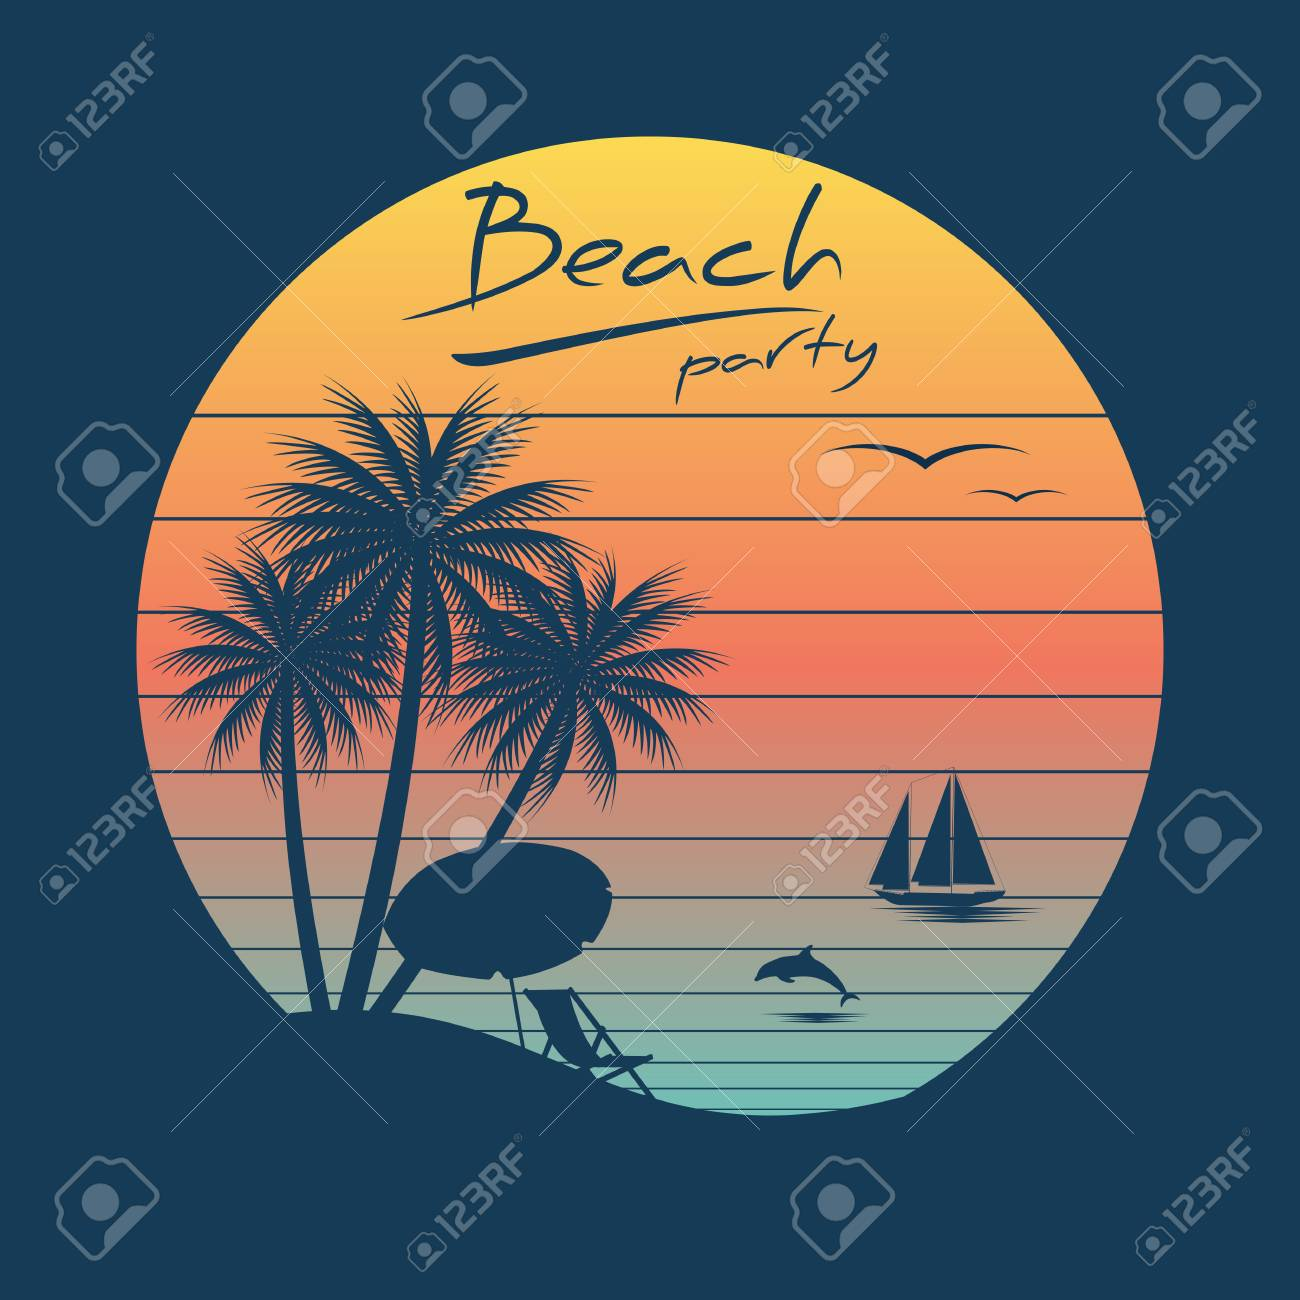 Vintage beach clipart graphic royalty free stock Vintage Beach Cliparts - Making-The-Web.com graphic royalty free stock